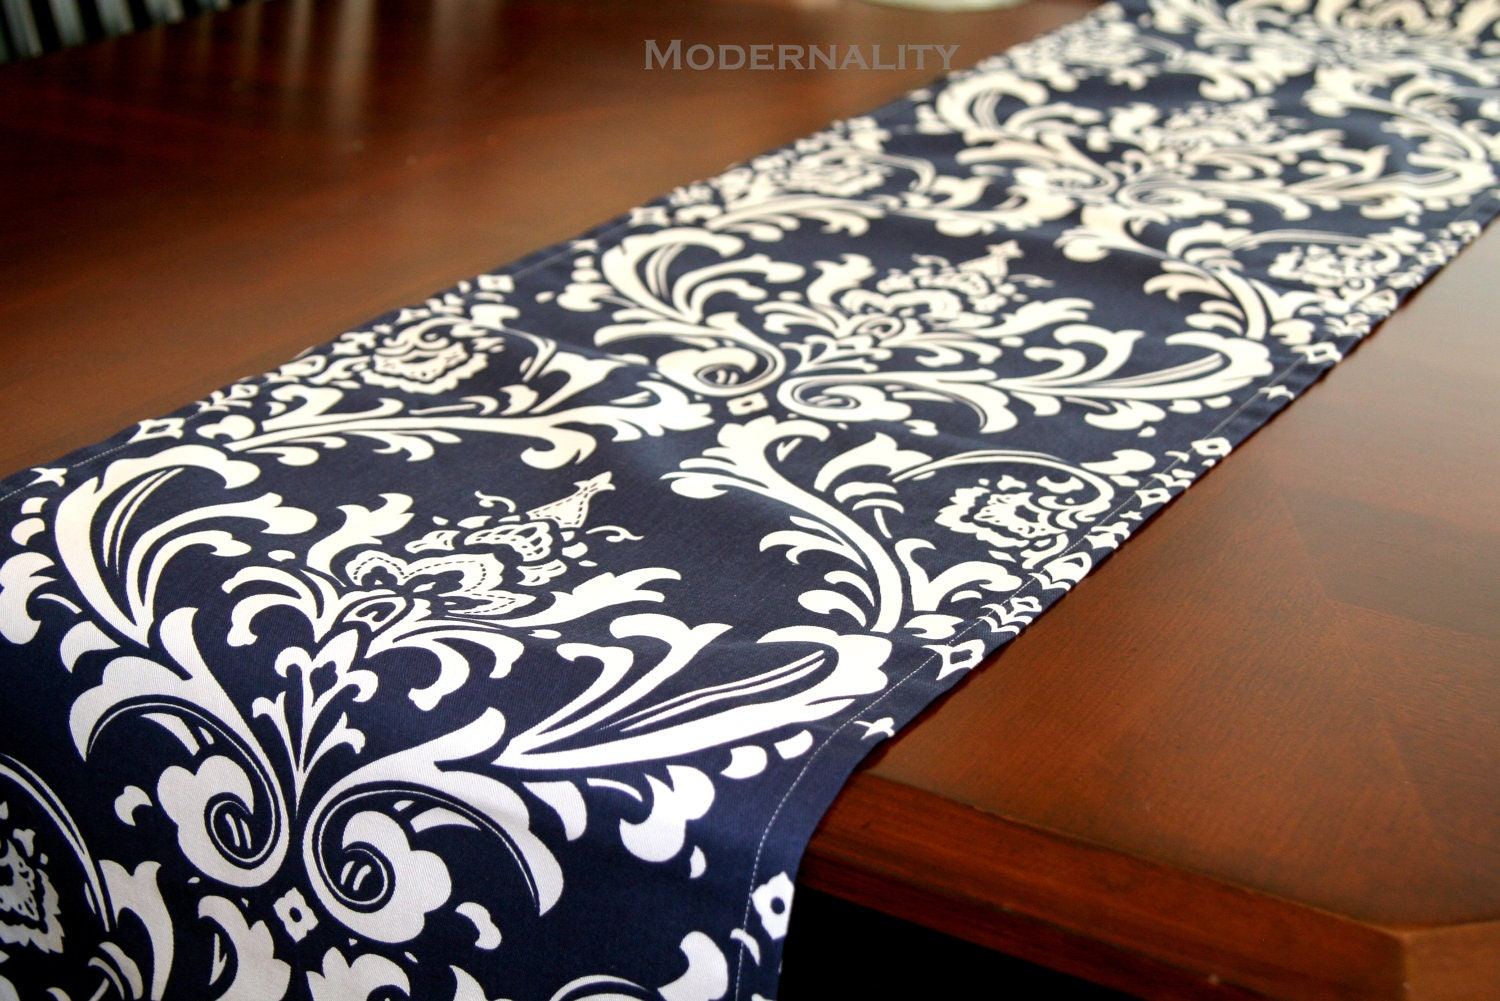 CLEARANCE Damask Table Runner Navy Blue Ozborne Dining Room : ilfullxfull3904980303ynd from www.etsy.com size 1500 x 1001 jpeg 363kB